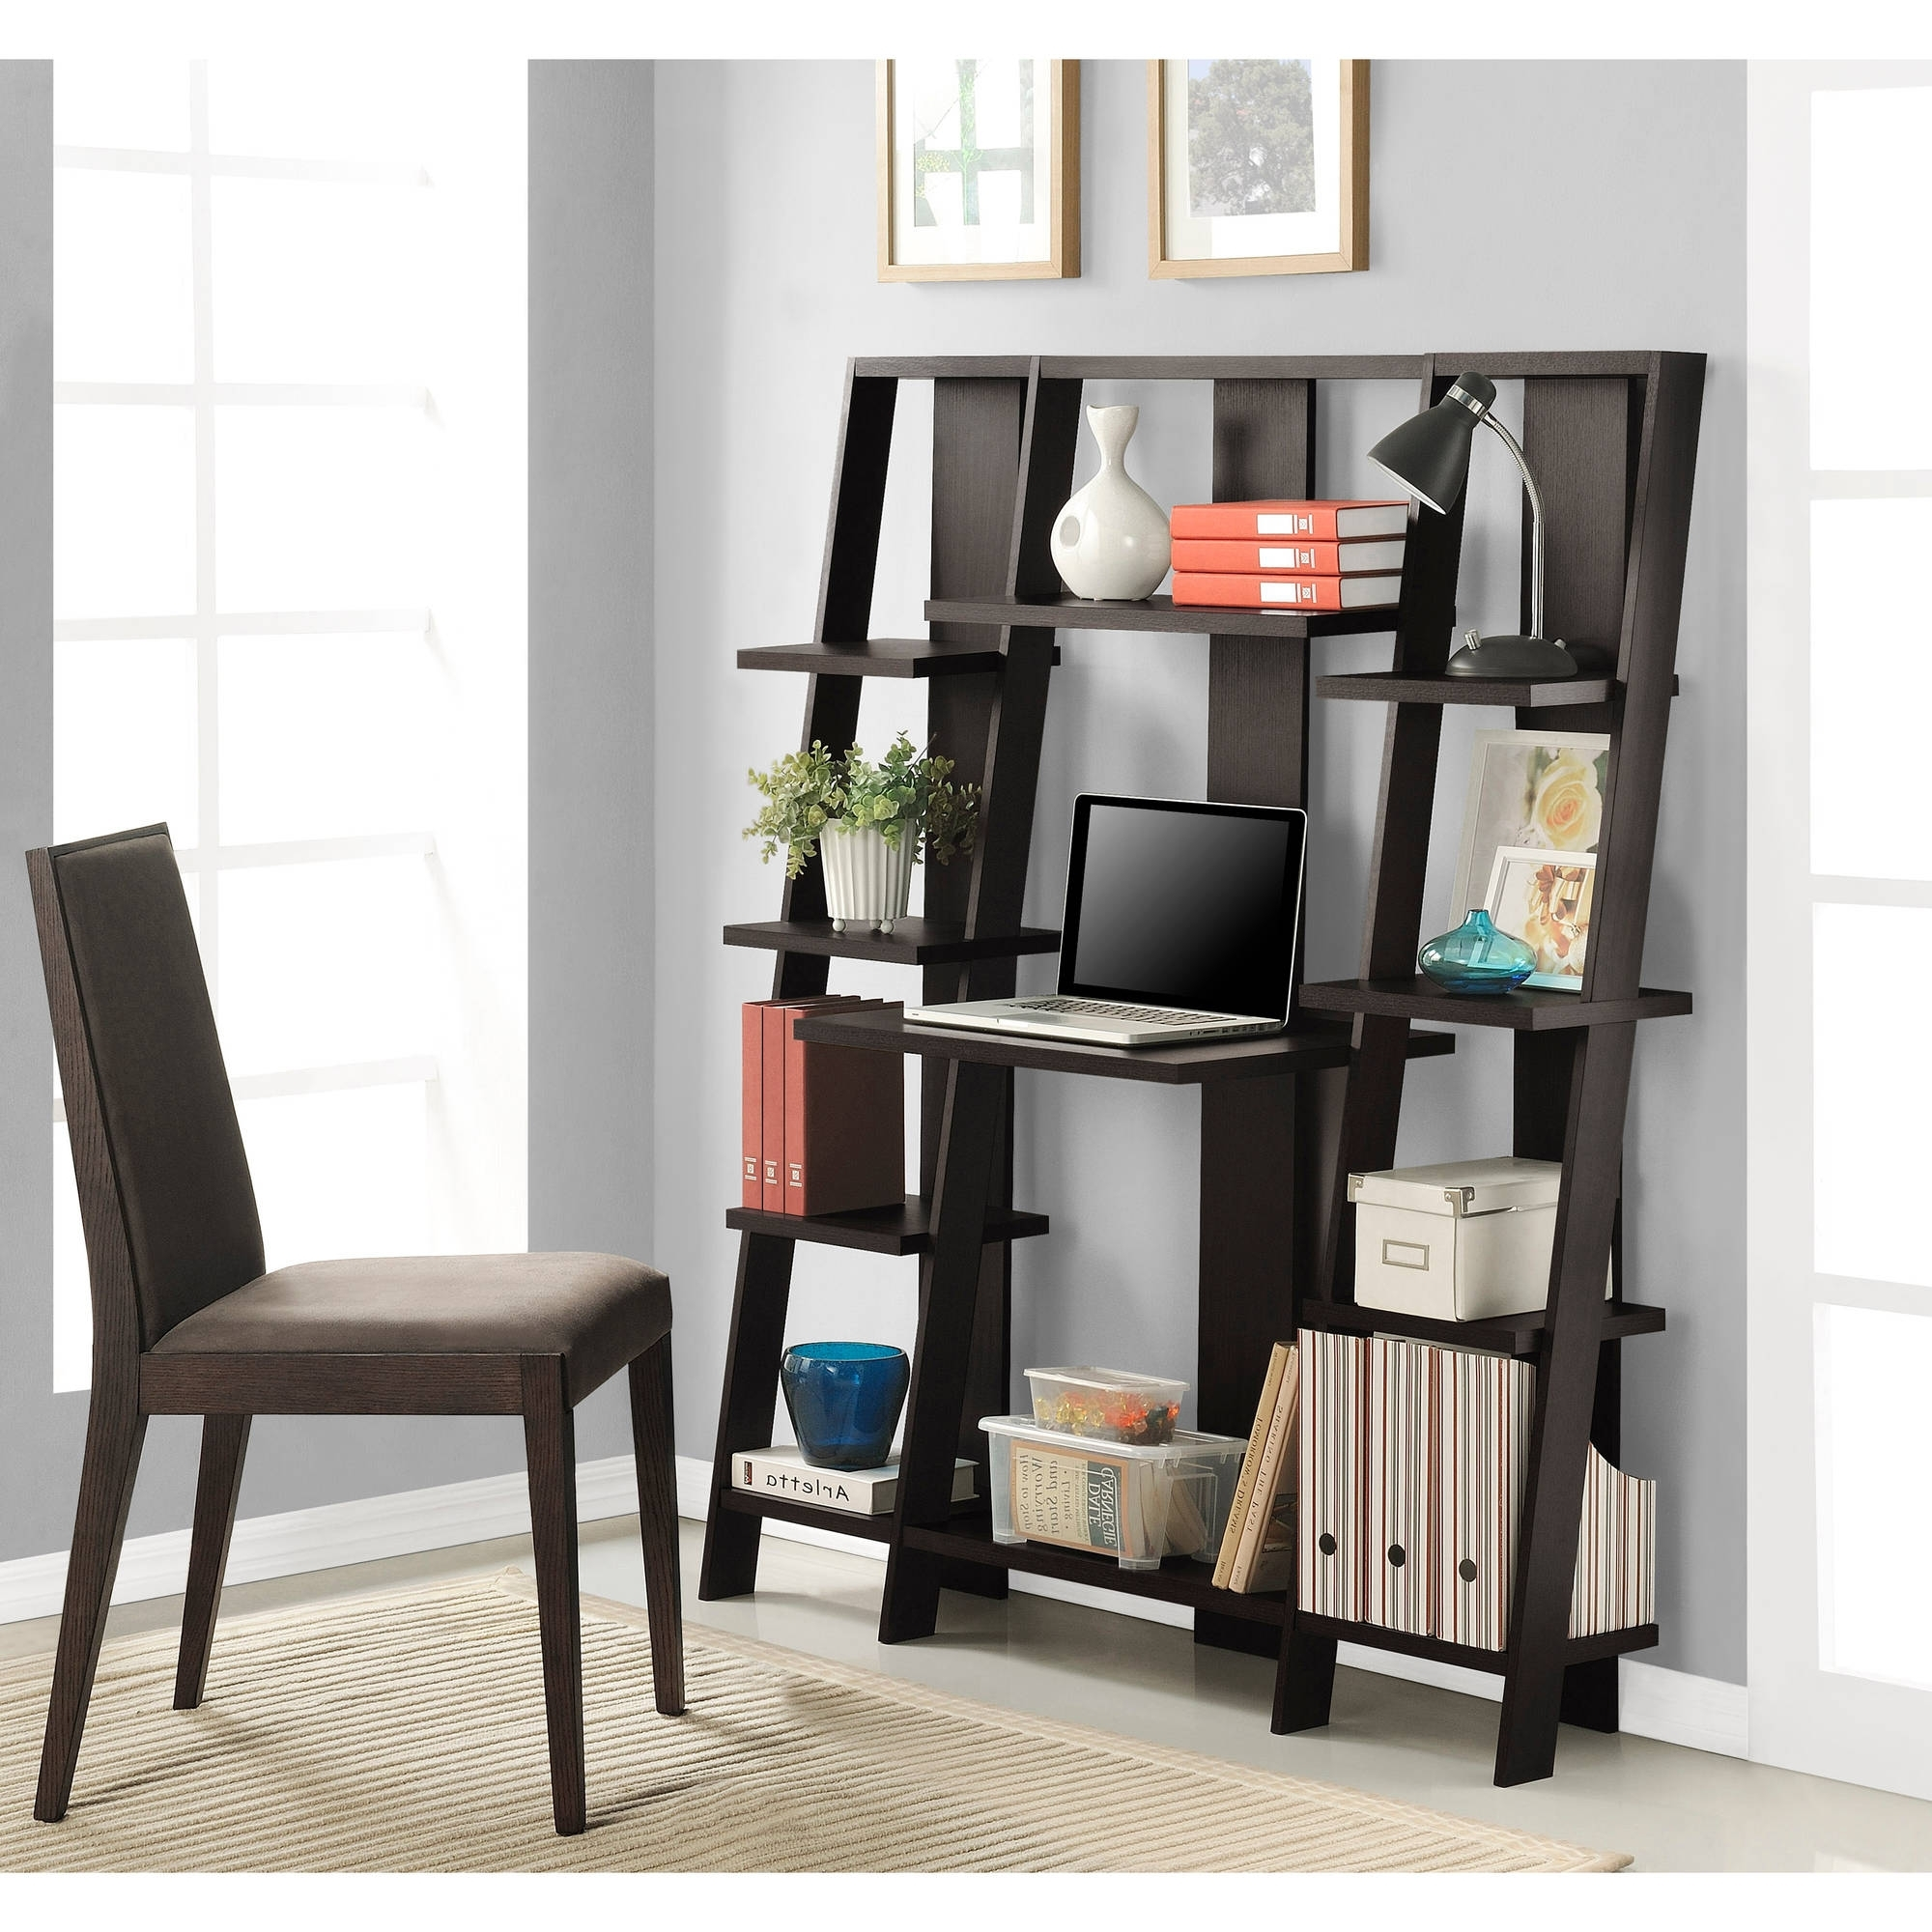 Desk With Bookcases Regarding Current Ameriwood Home Gradient Ladder Desk/bookcase, Espresso – Walmart (View 5 of 15)